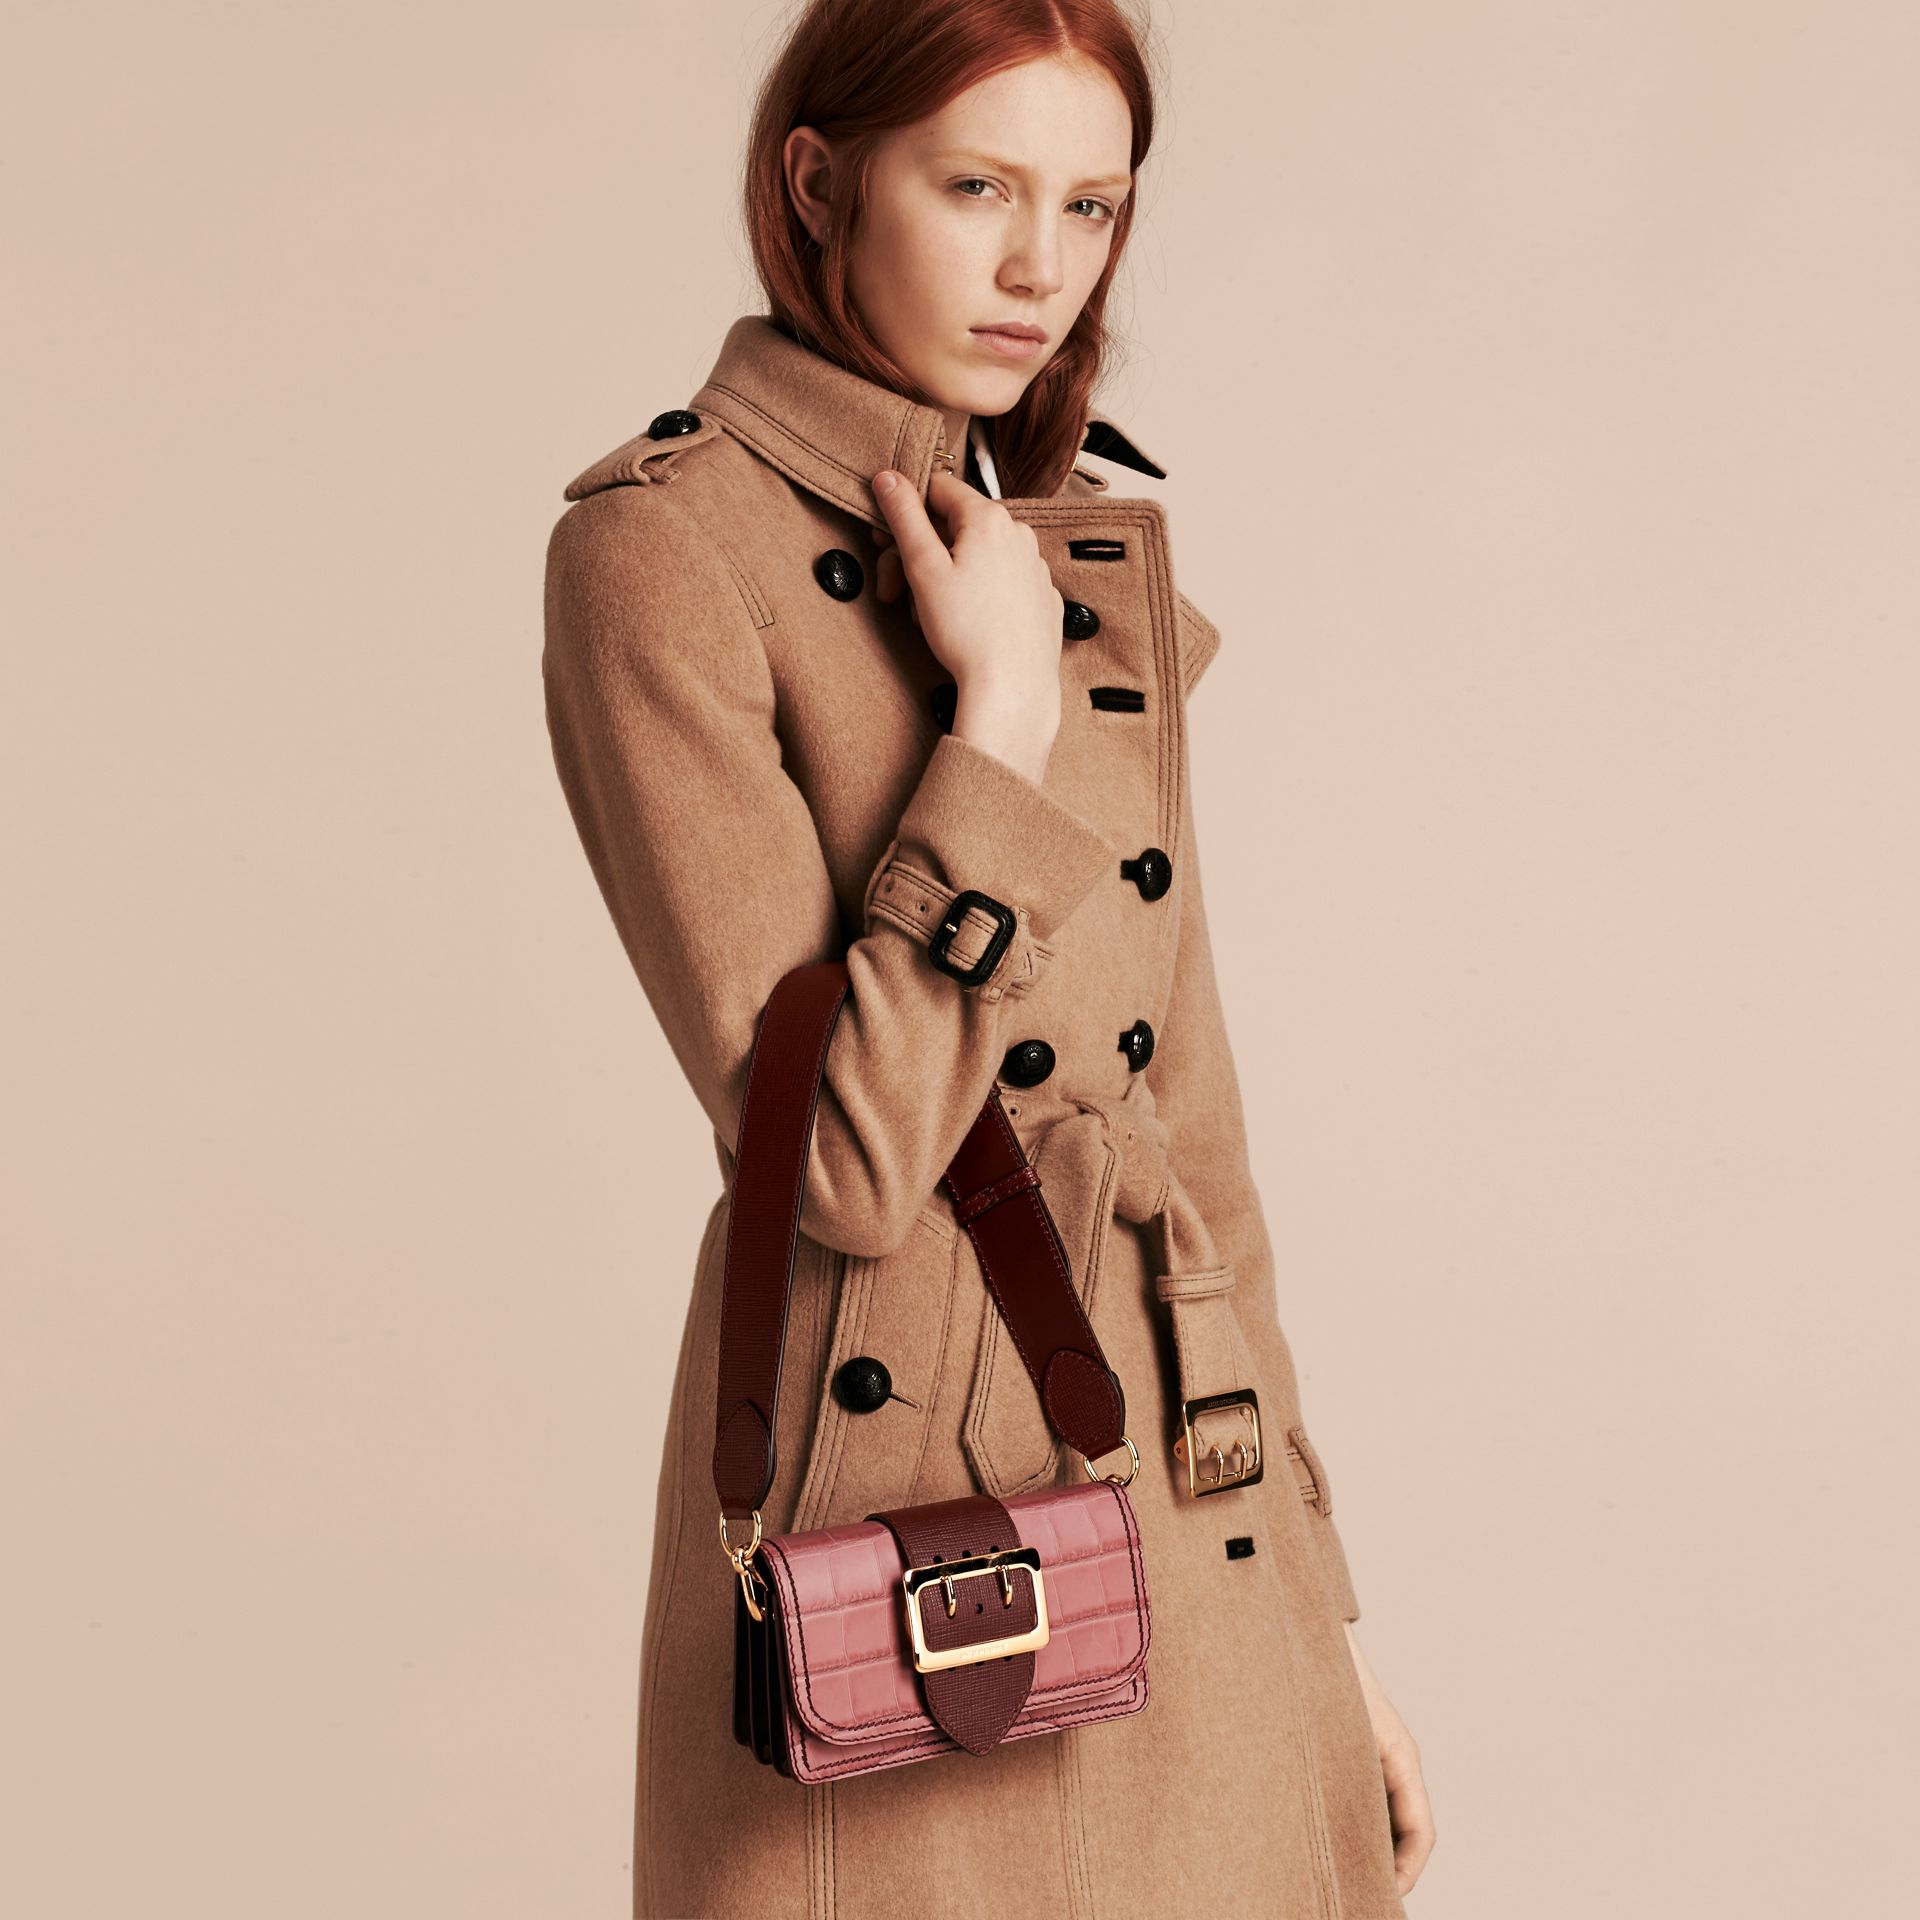 The Small Buckle Bag in Alligator and Leather in Dusky Pink/ Burgundy - Women | Burberry United States - gallery image 3